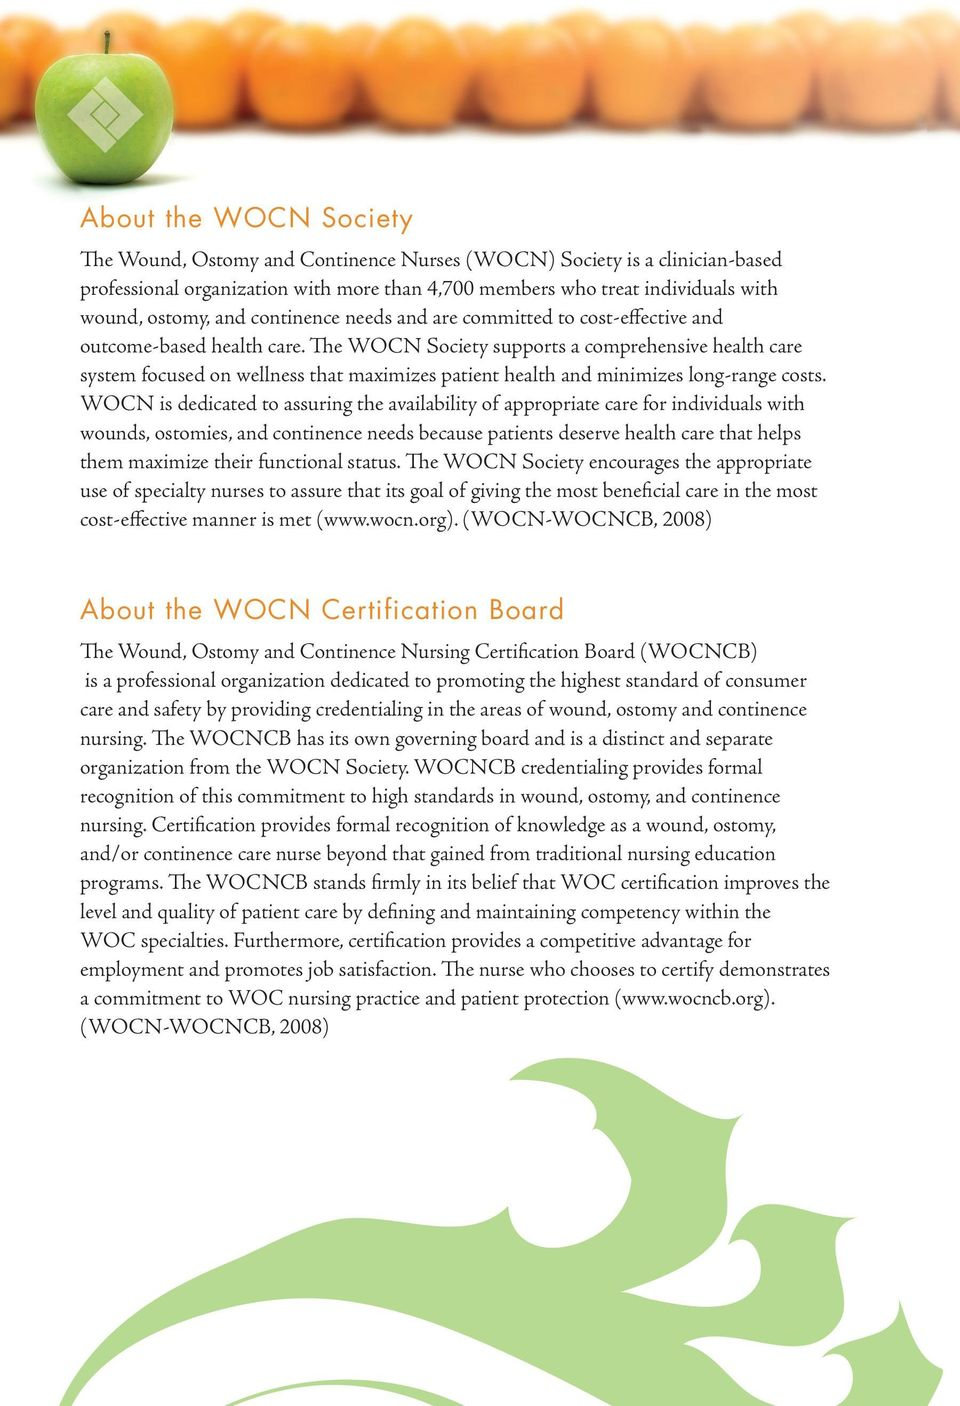 The WOCN Society supports a comprehensive health care system focused on wellness that maximizes patient health and minimizes long-range costs.